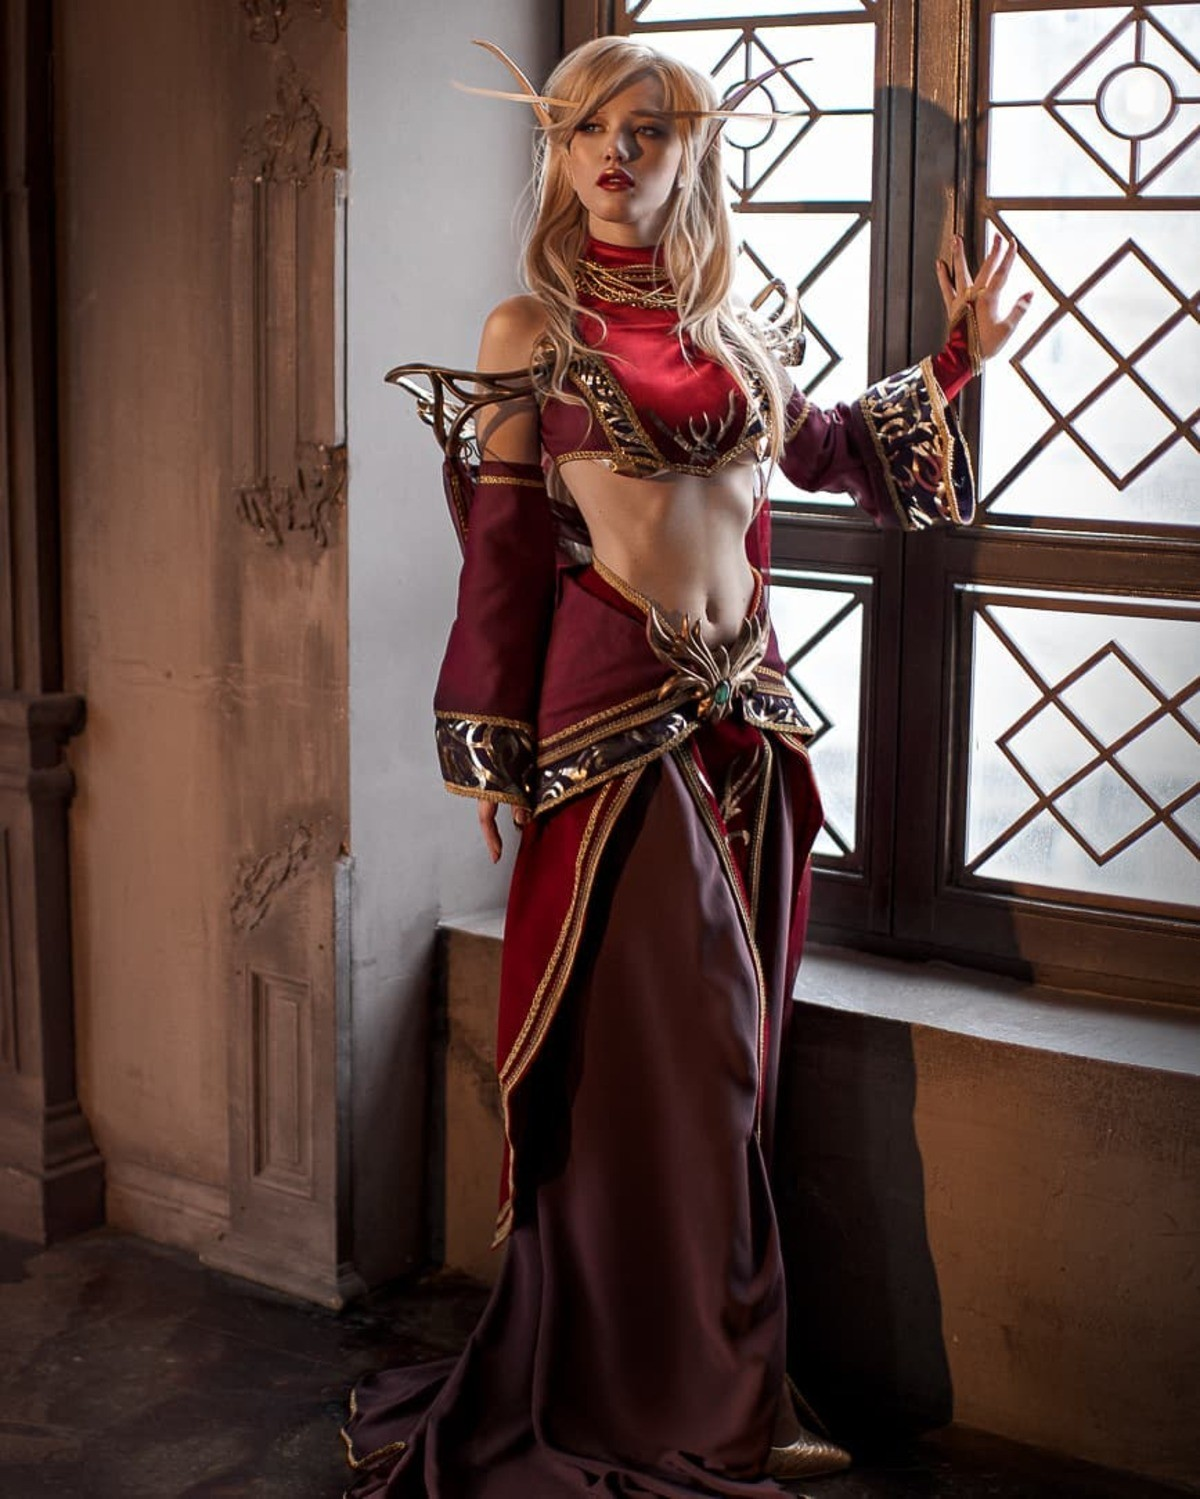 Blood Elf by ladalyumos. .. Even has the ridiculous eyebrows